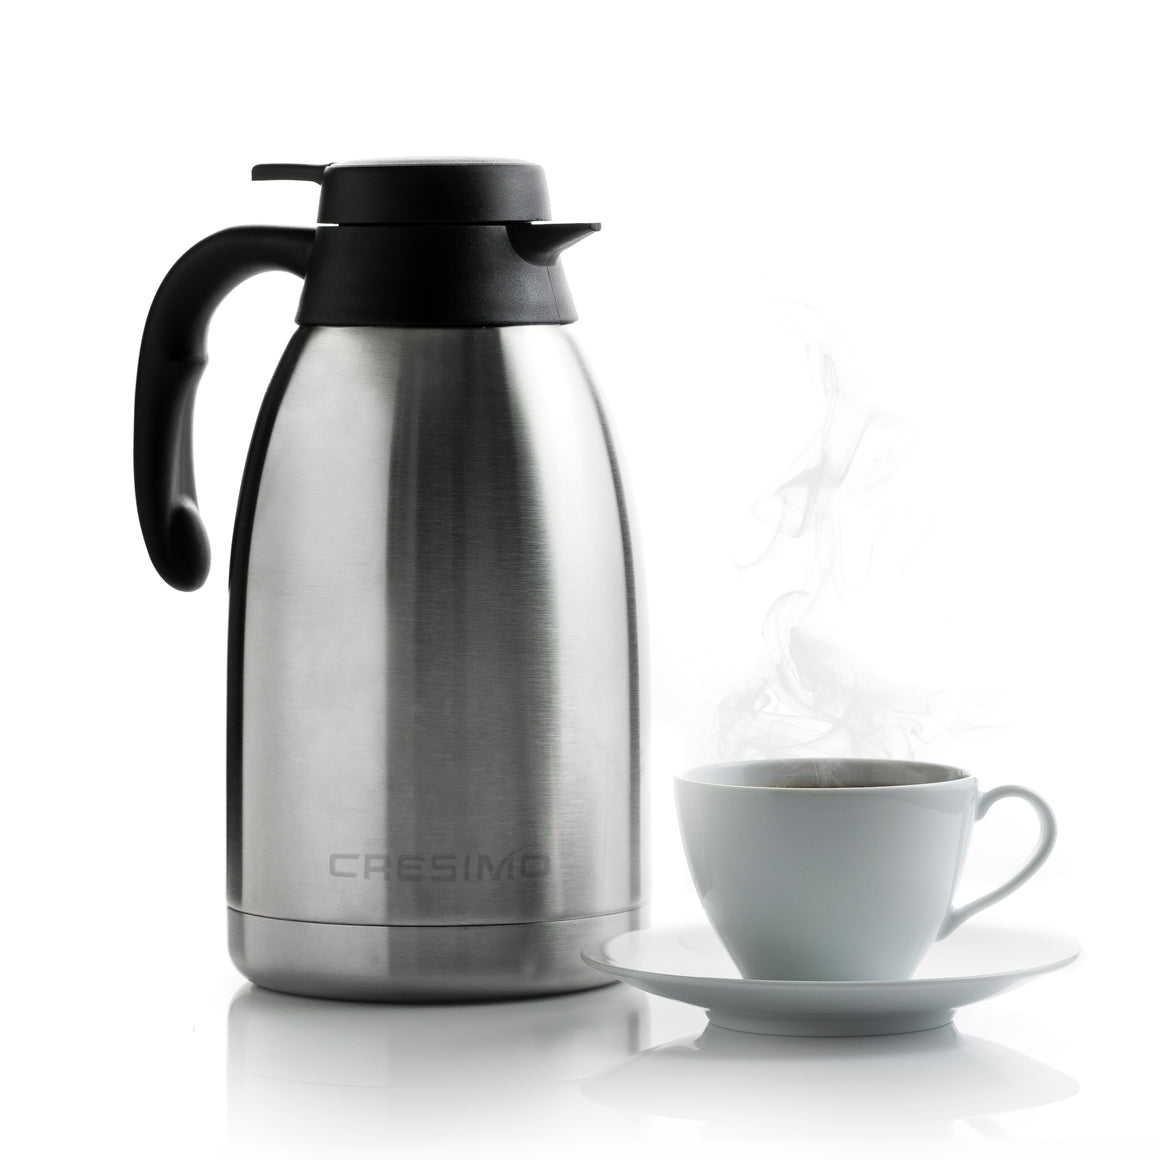 68 Oz (2L) Stainless Steel Thermal Coffee Carafe